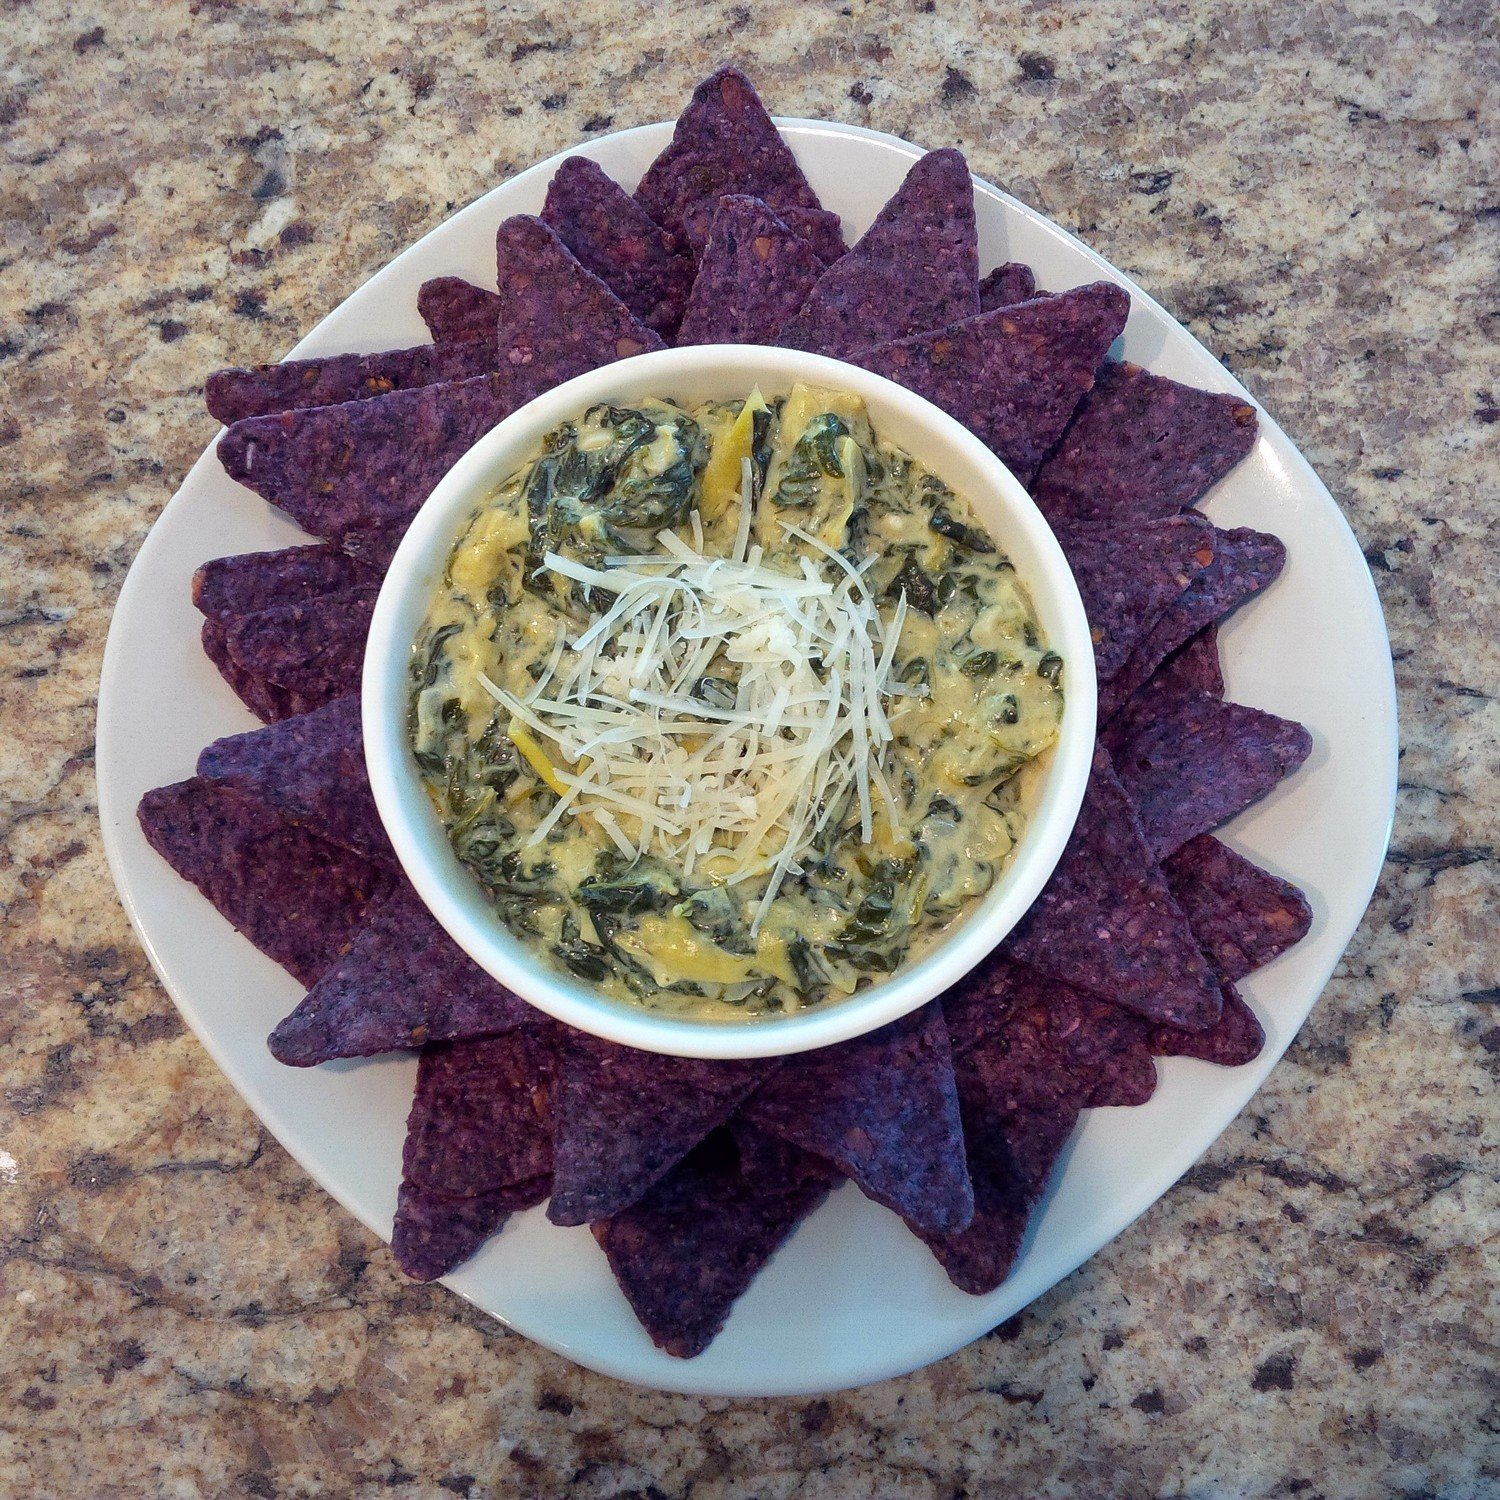 Homemade Spinach & Artichoke Dip